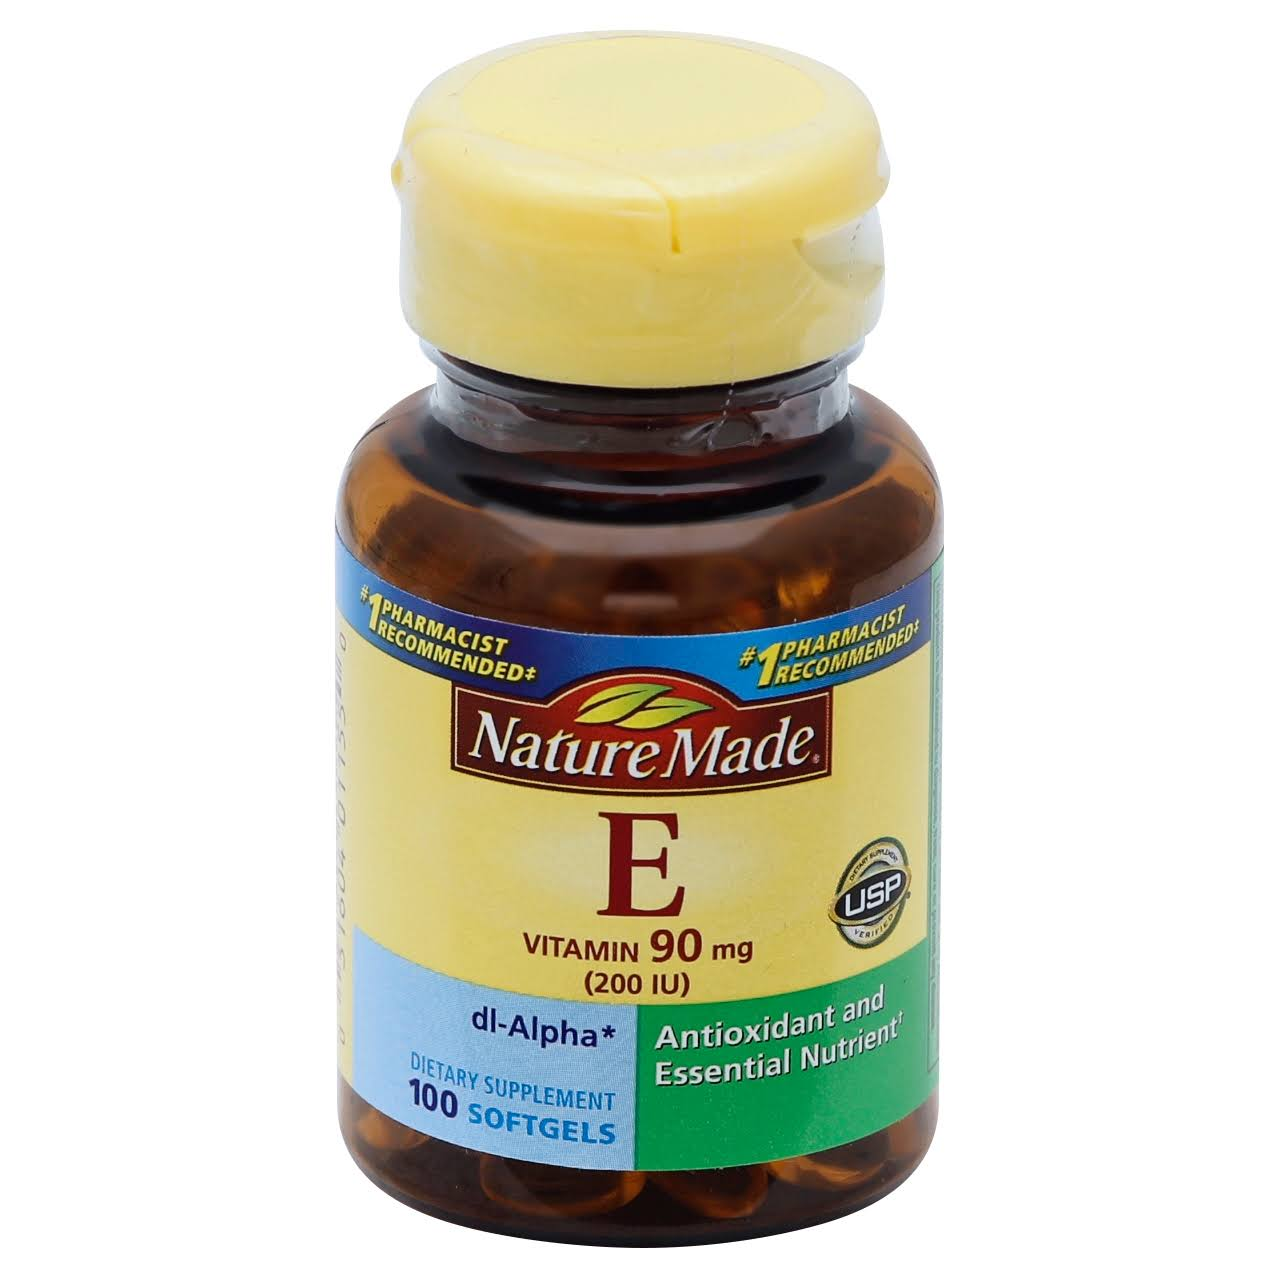 Nature Made Vitamin E 200 IU Softgels